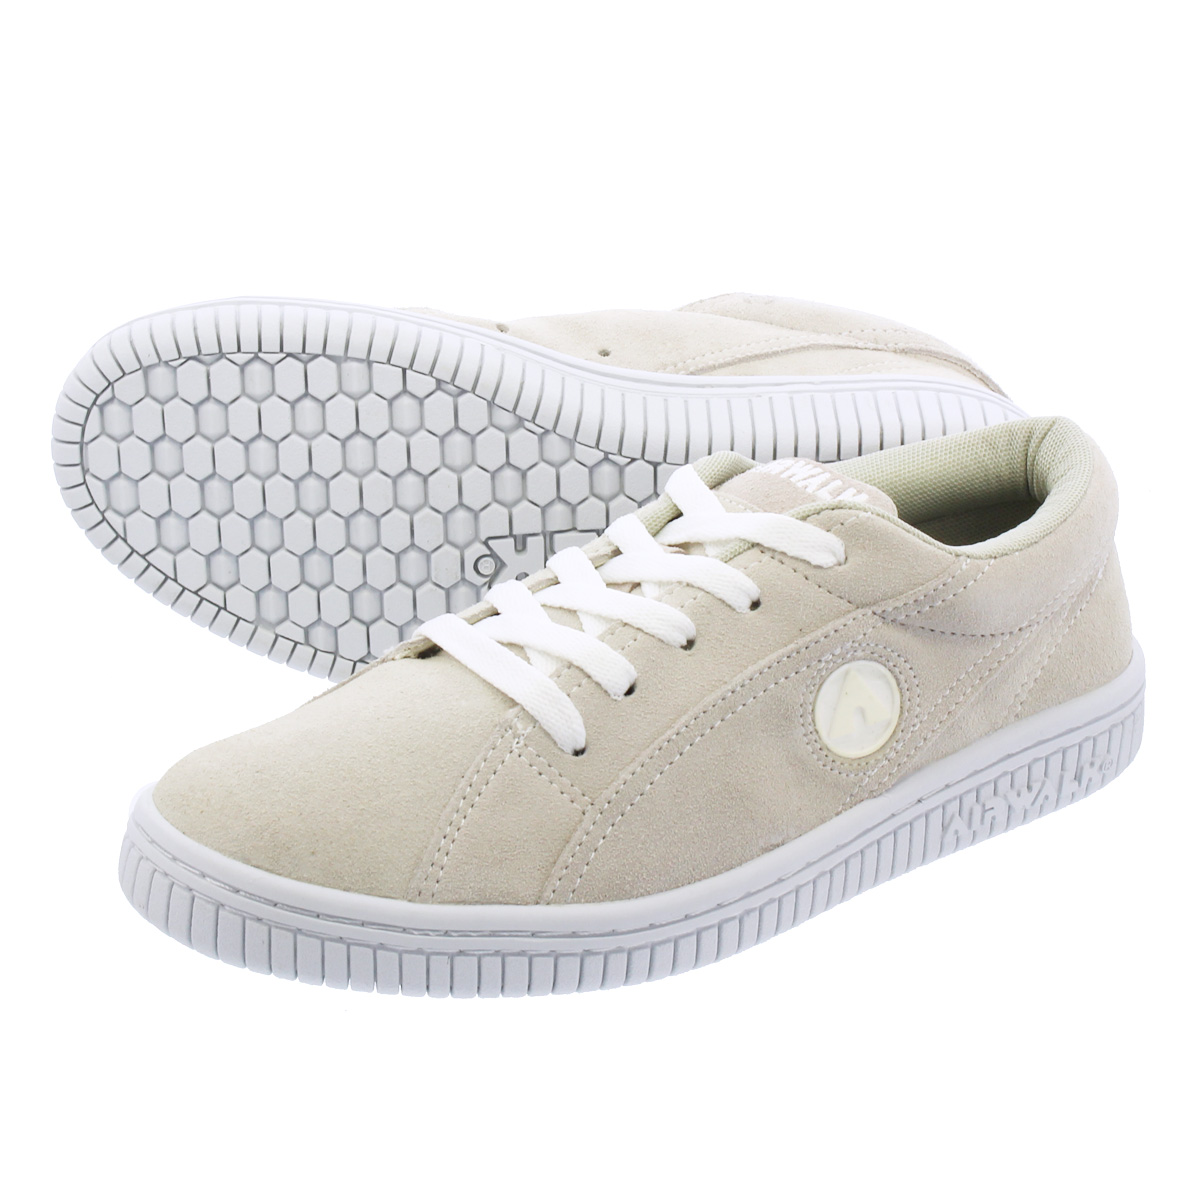 AIRWALK ONE エア ウォーク ワン WHITE/WHITE aw-cl-6007